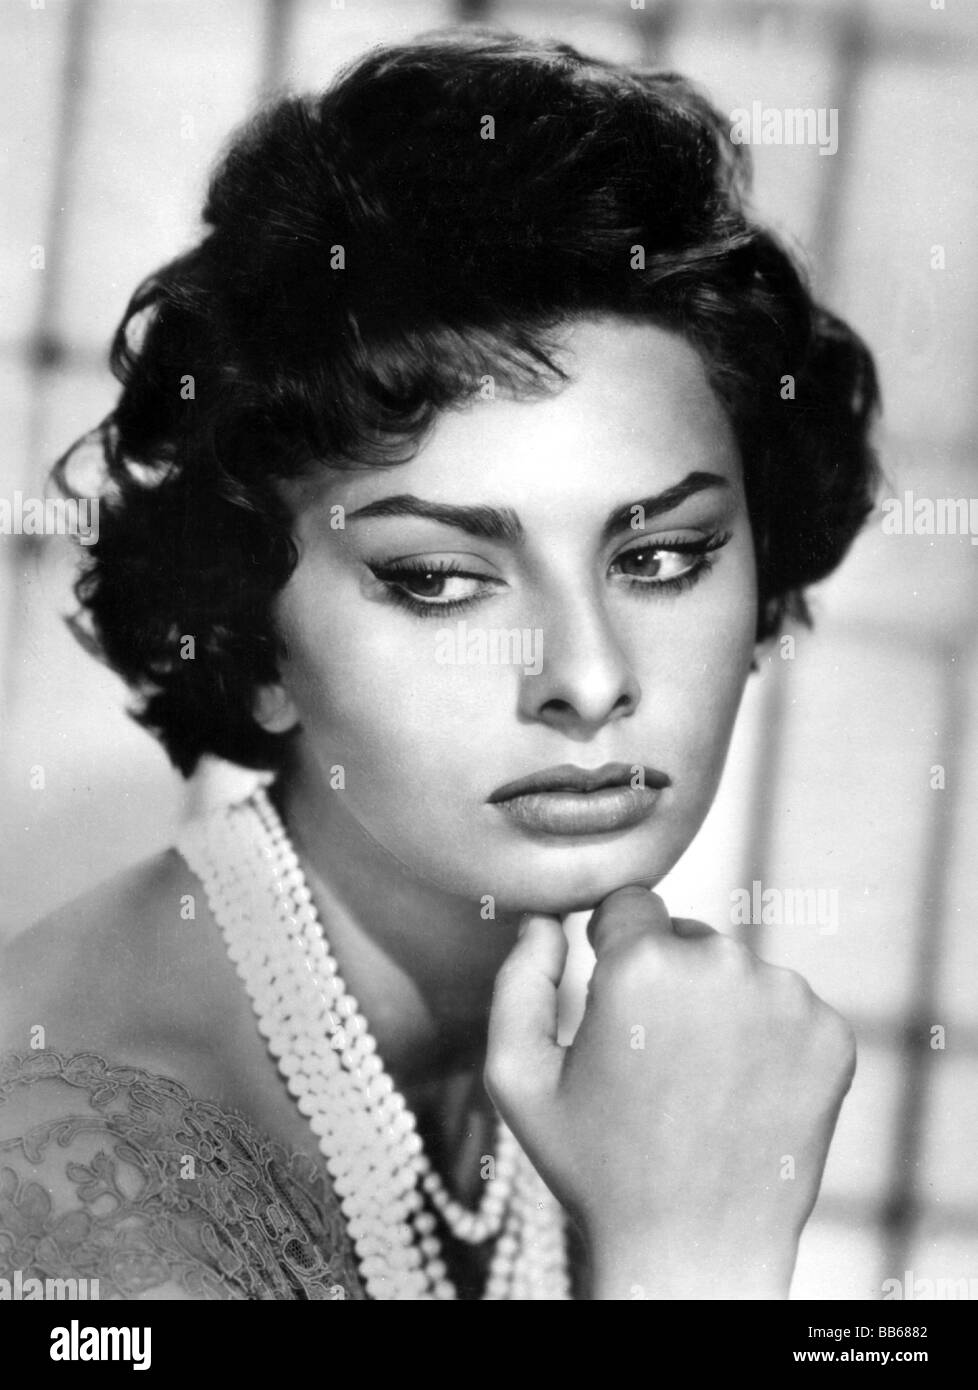 Miraculous Sophia Loren Portrait 1950S Stock Photos Sophia Loren Portrait Hairstyle Inspiration Daily Dogsangcom